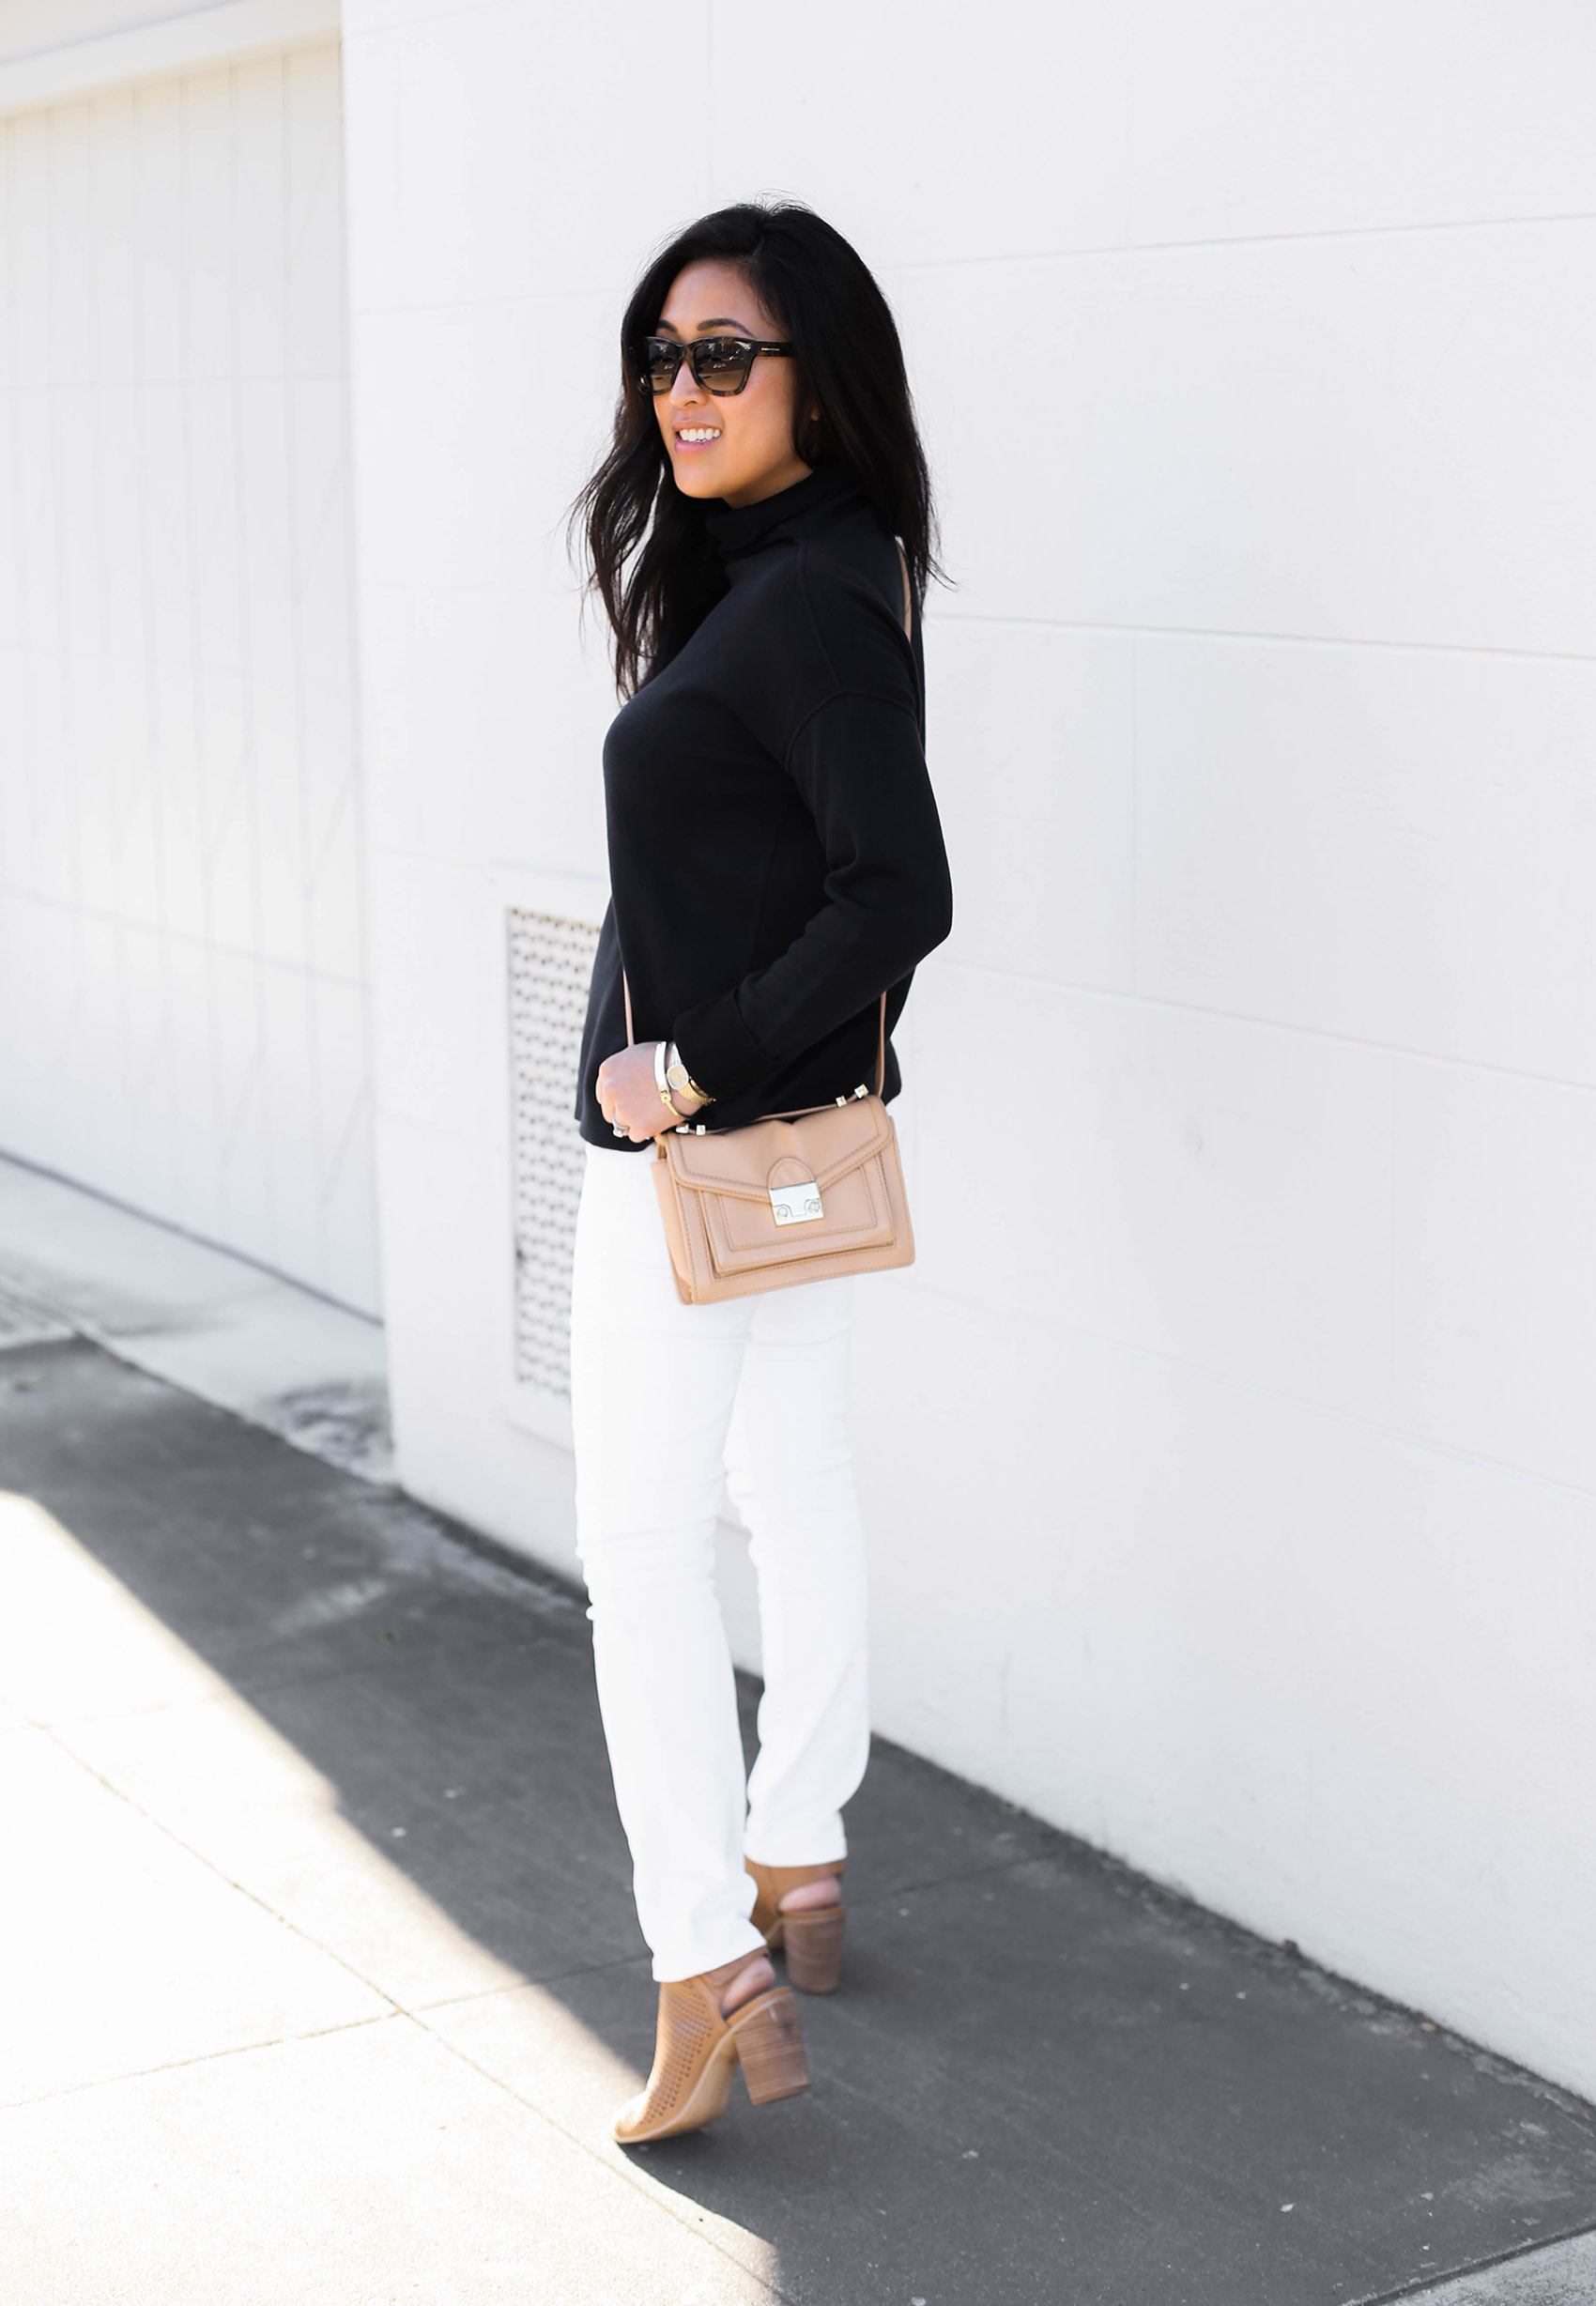 @victoriamstudio | loeffler randall mini rider bag, everlane double knit sweater, steve madden suzy booties